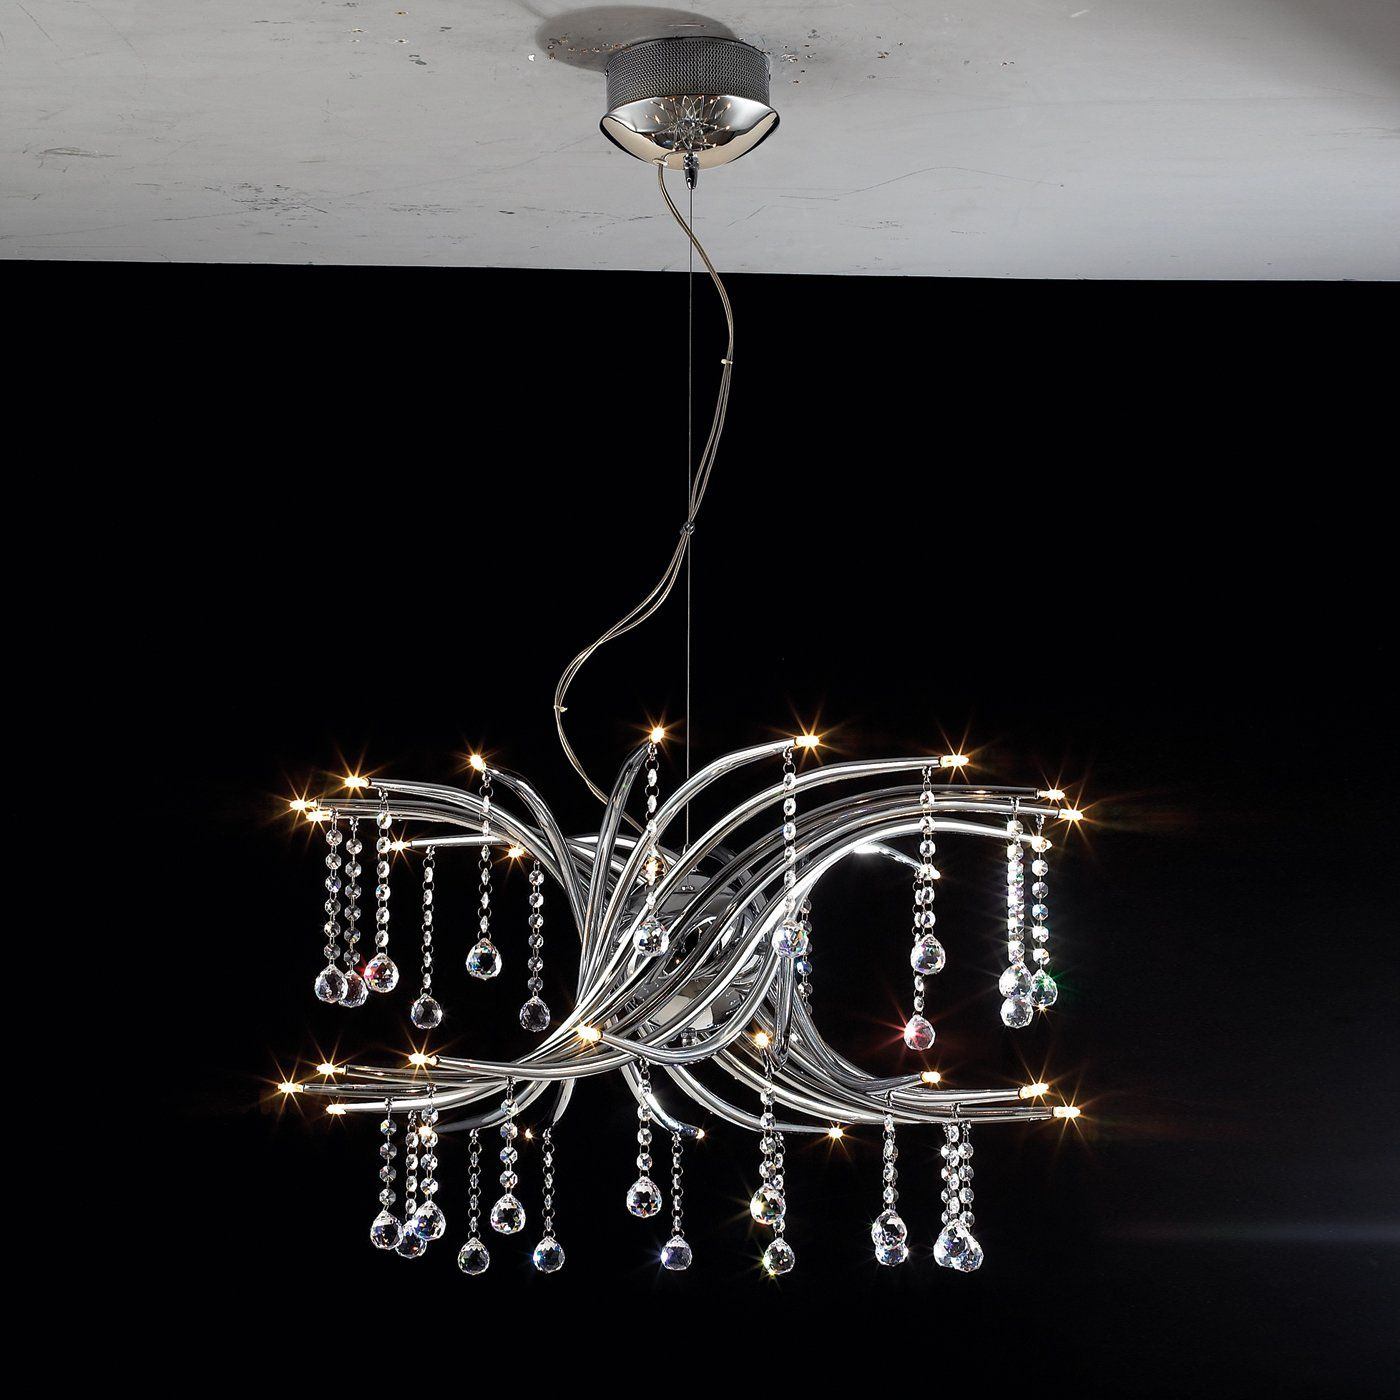 Amazing Chandelier Light Store Gallery Simple Design Home